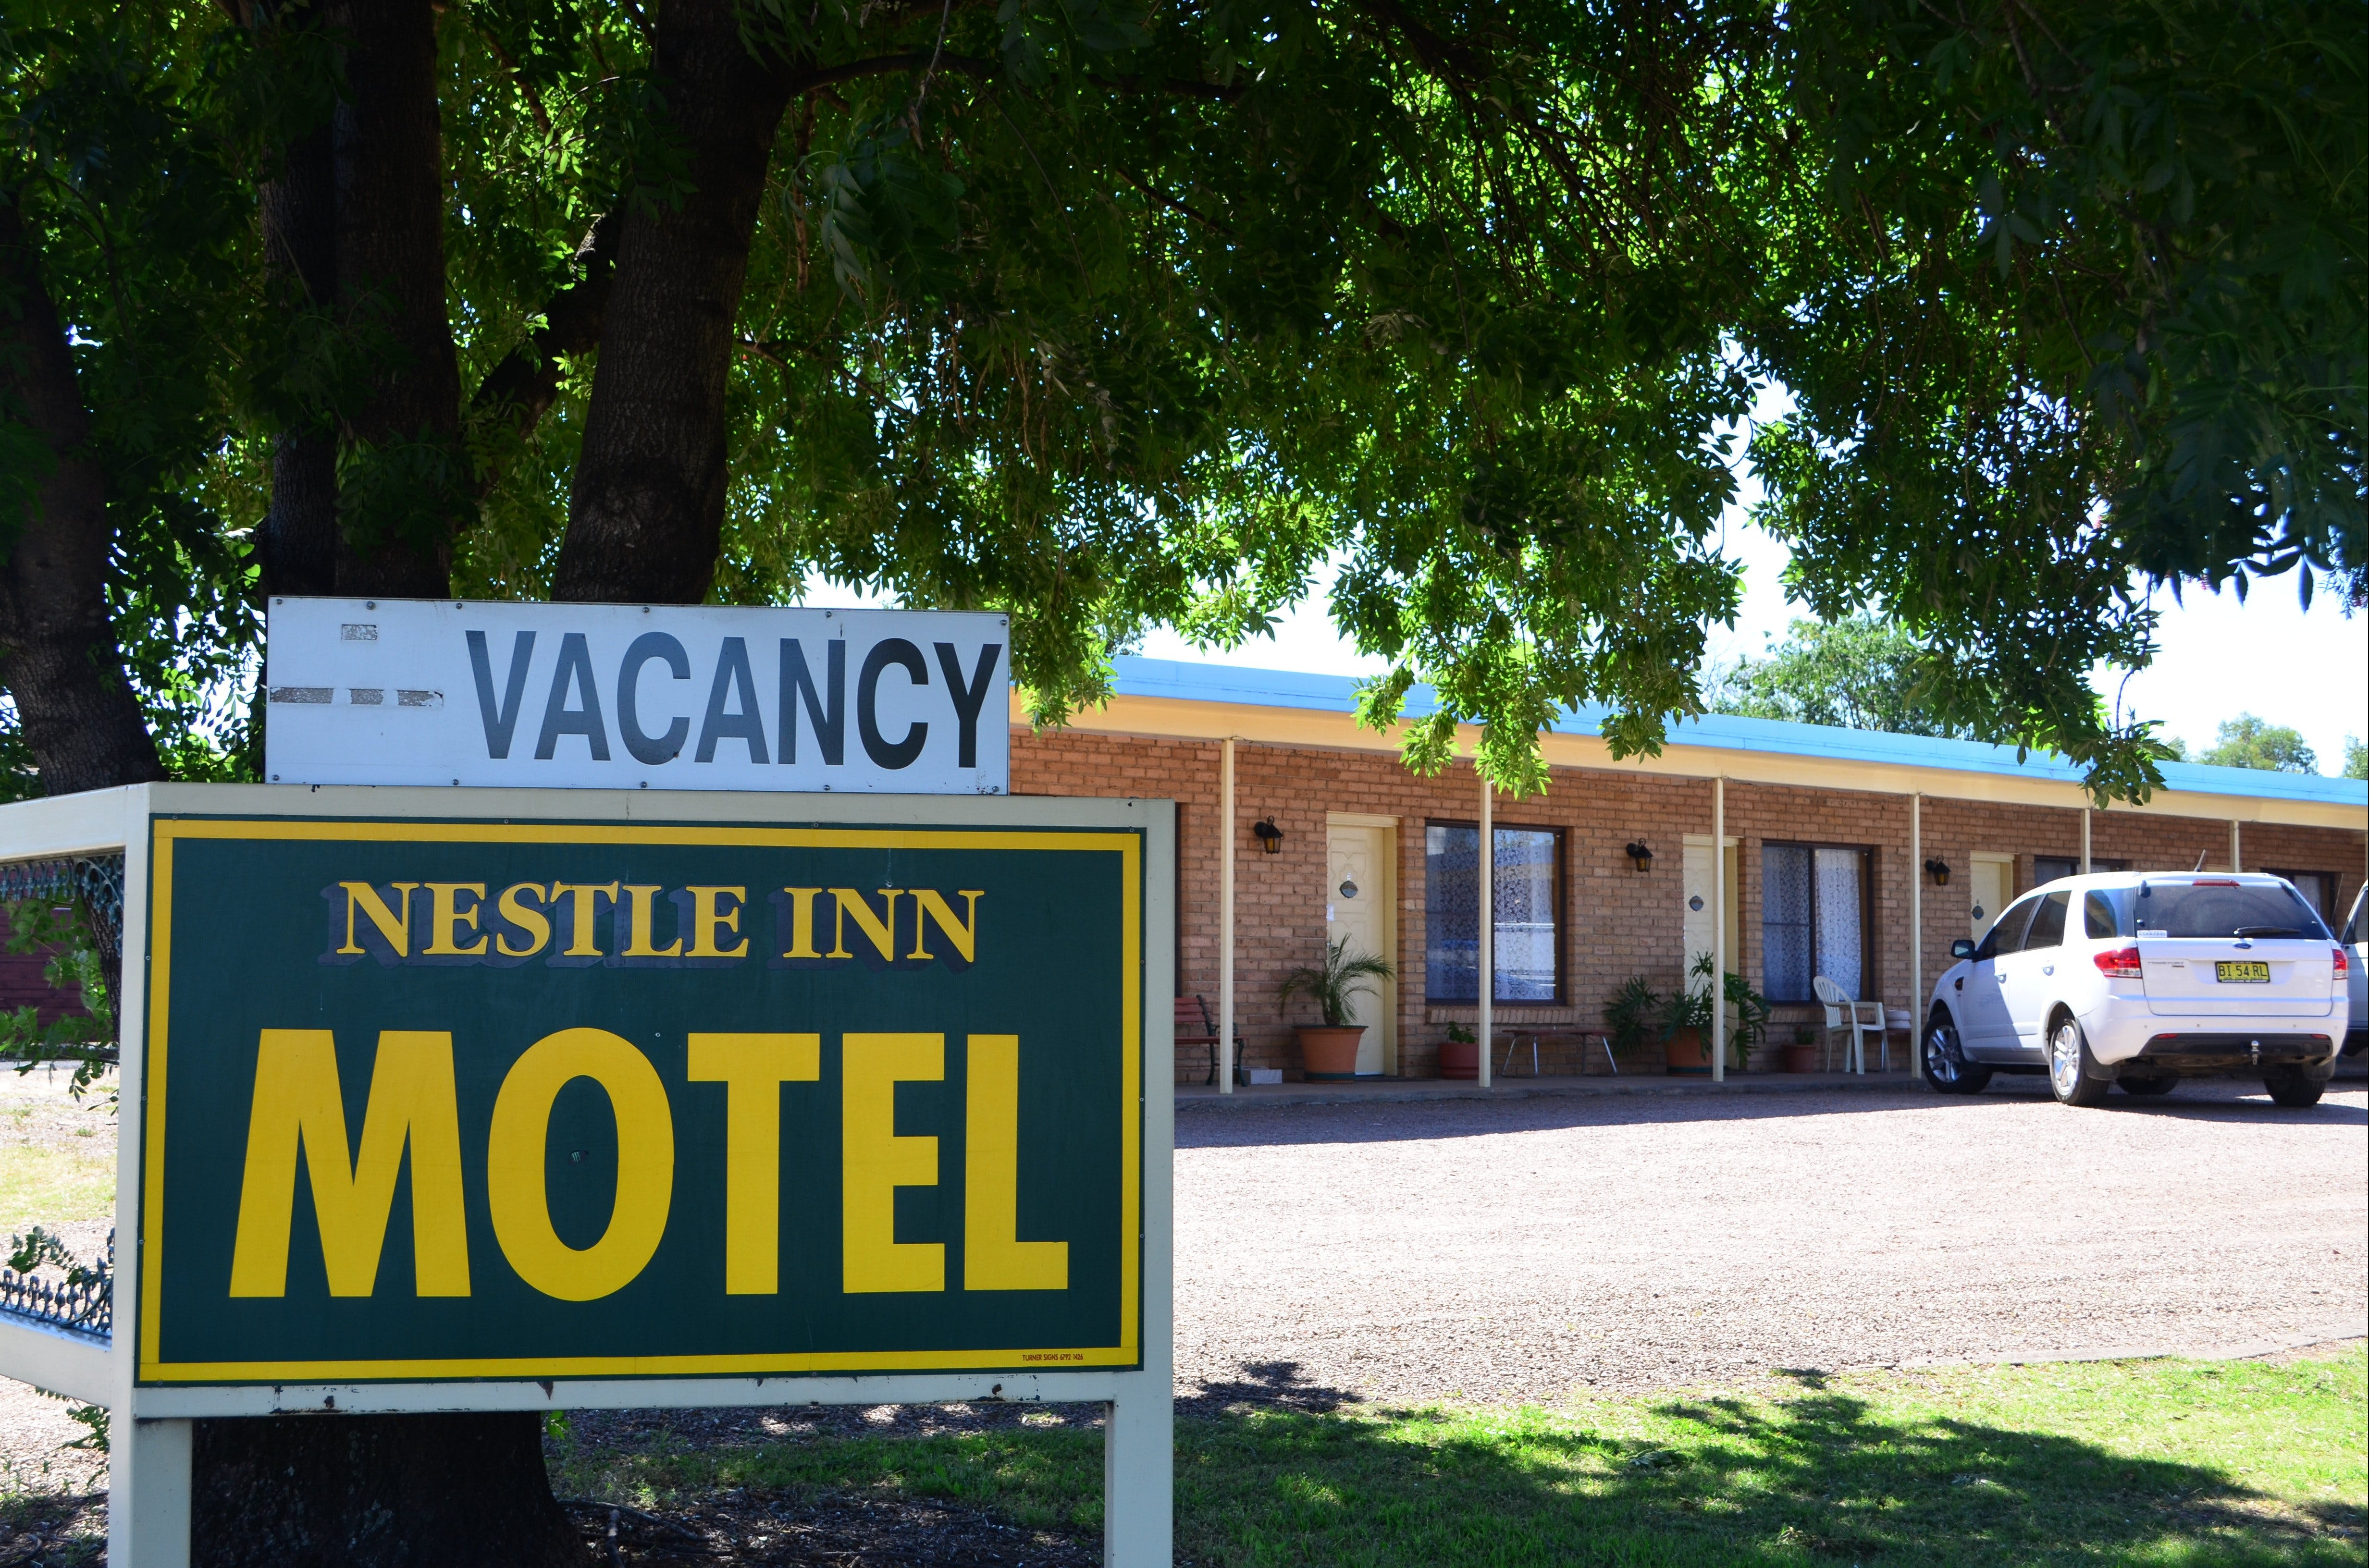 Boggabri Nestle Inn Motel - WA Accommodation